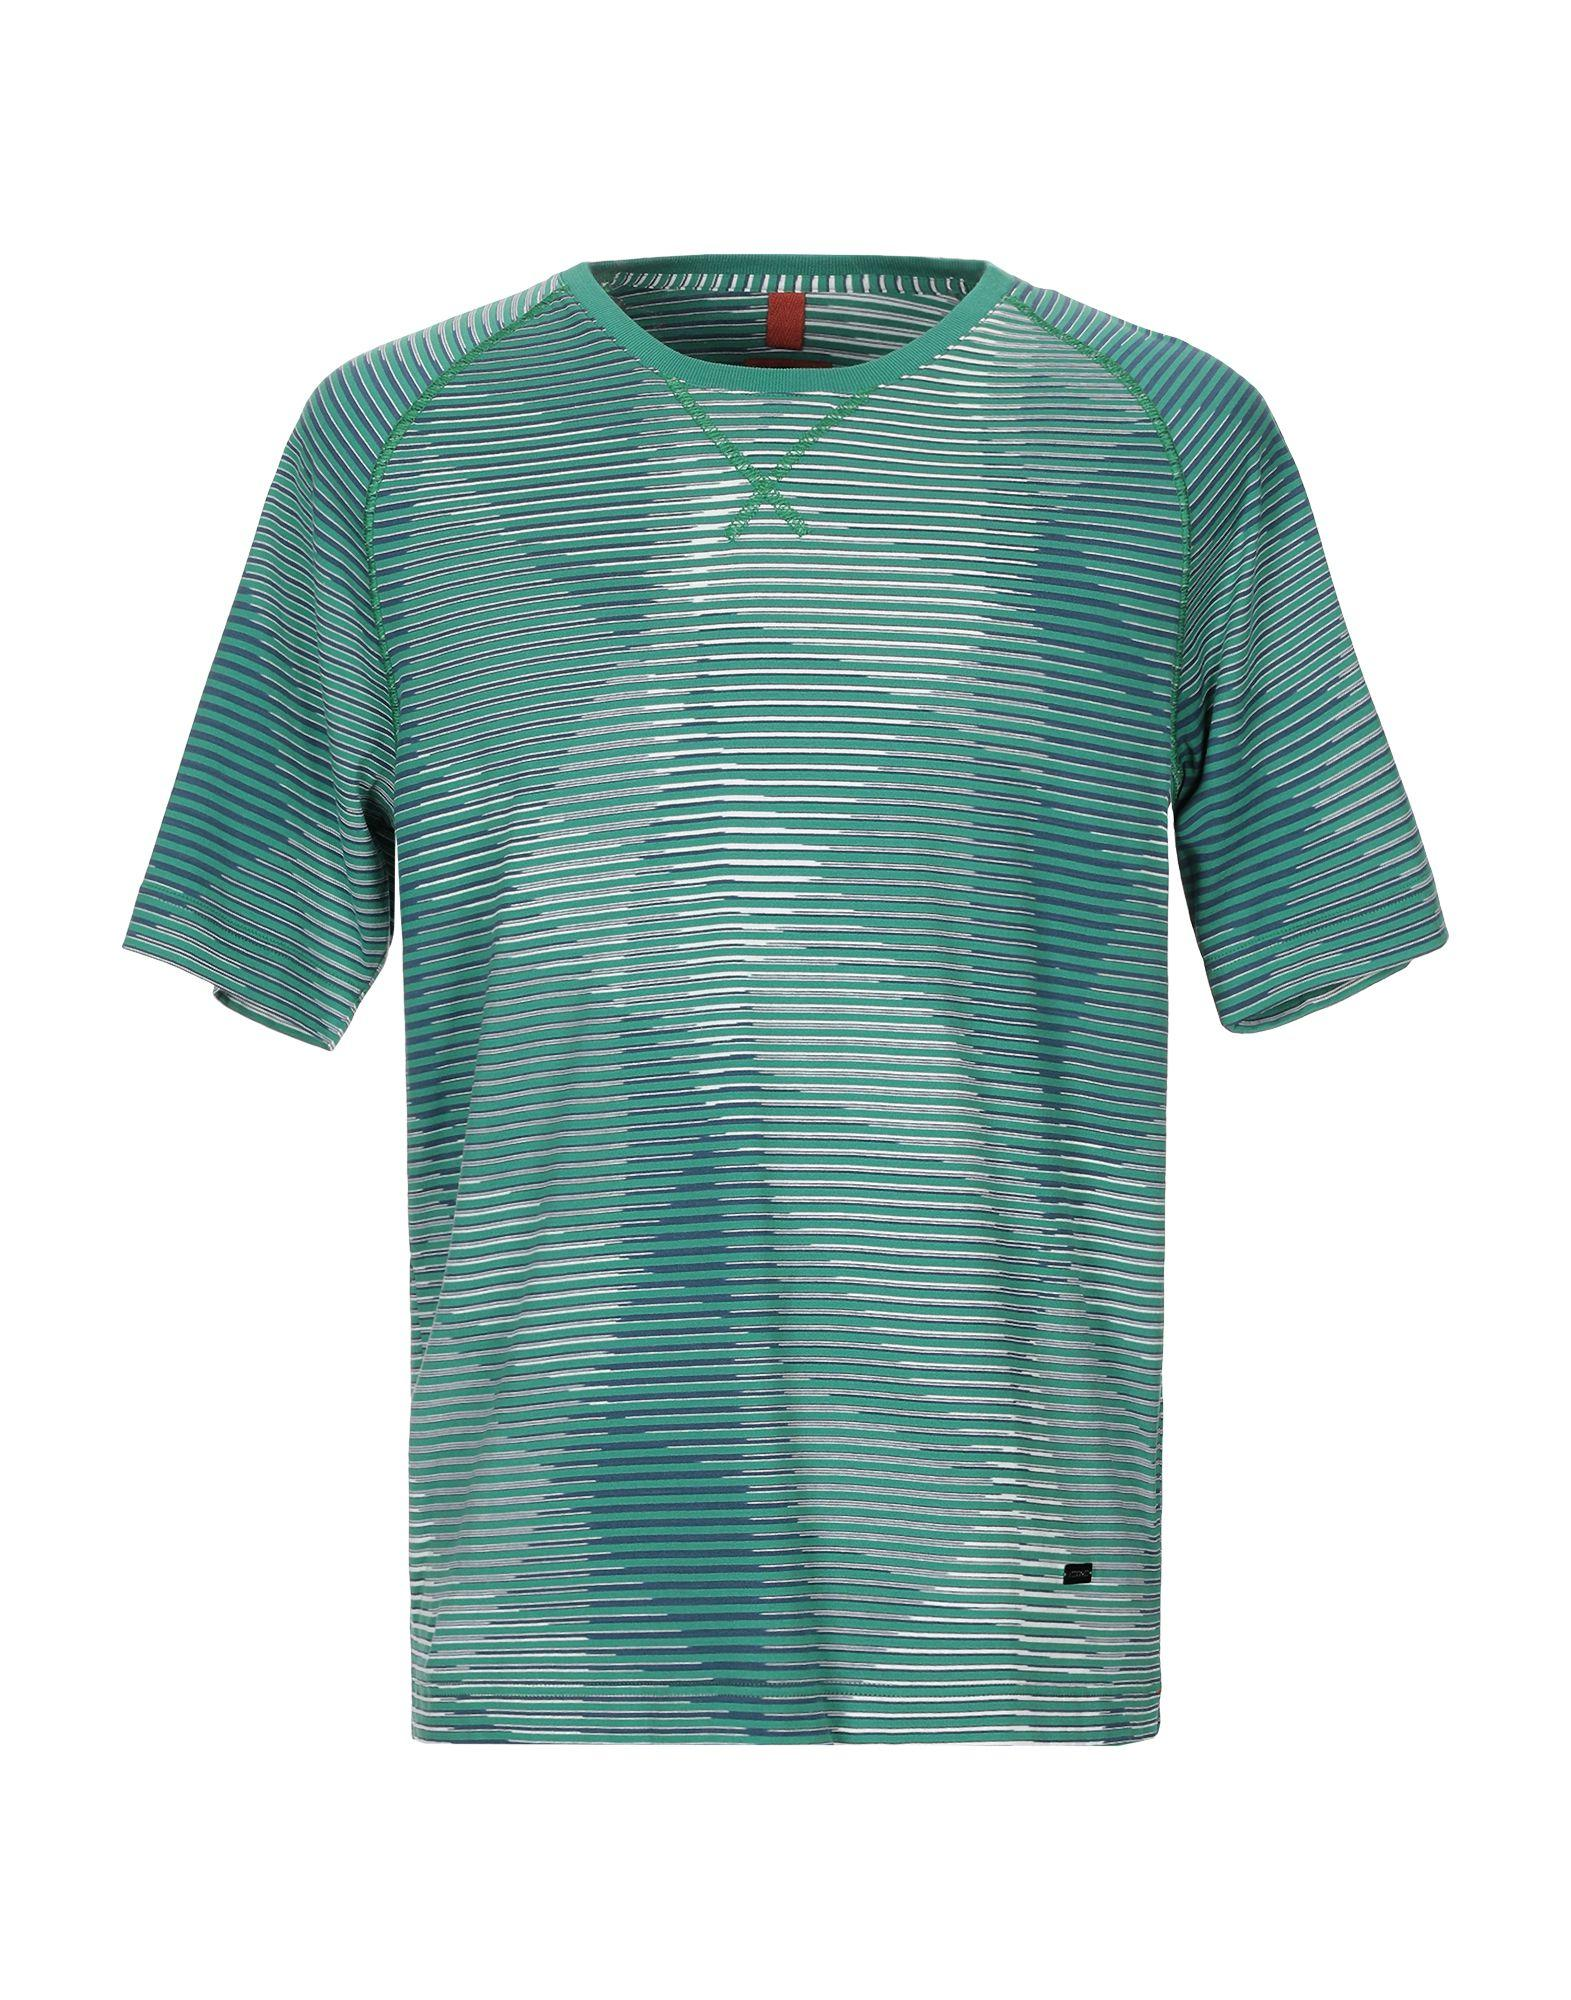 276aadda8 Lyst - Missoni T-shirt in Green for Men